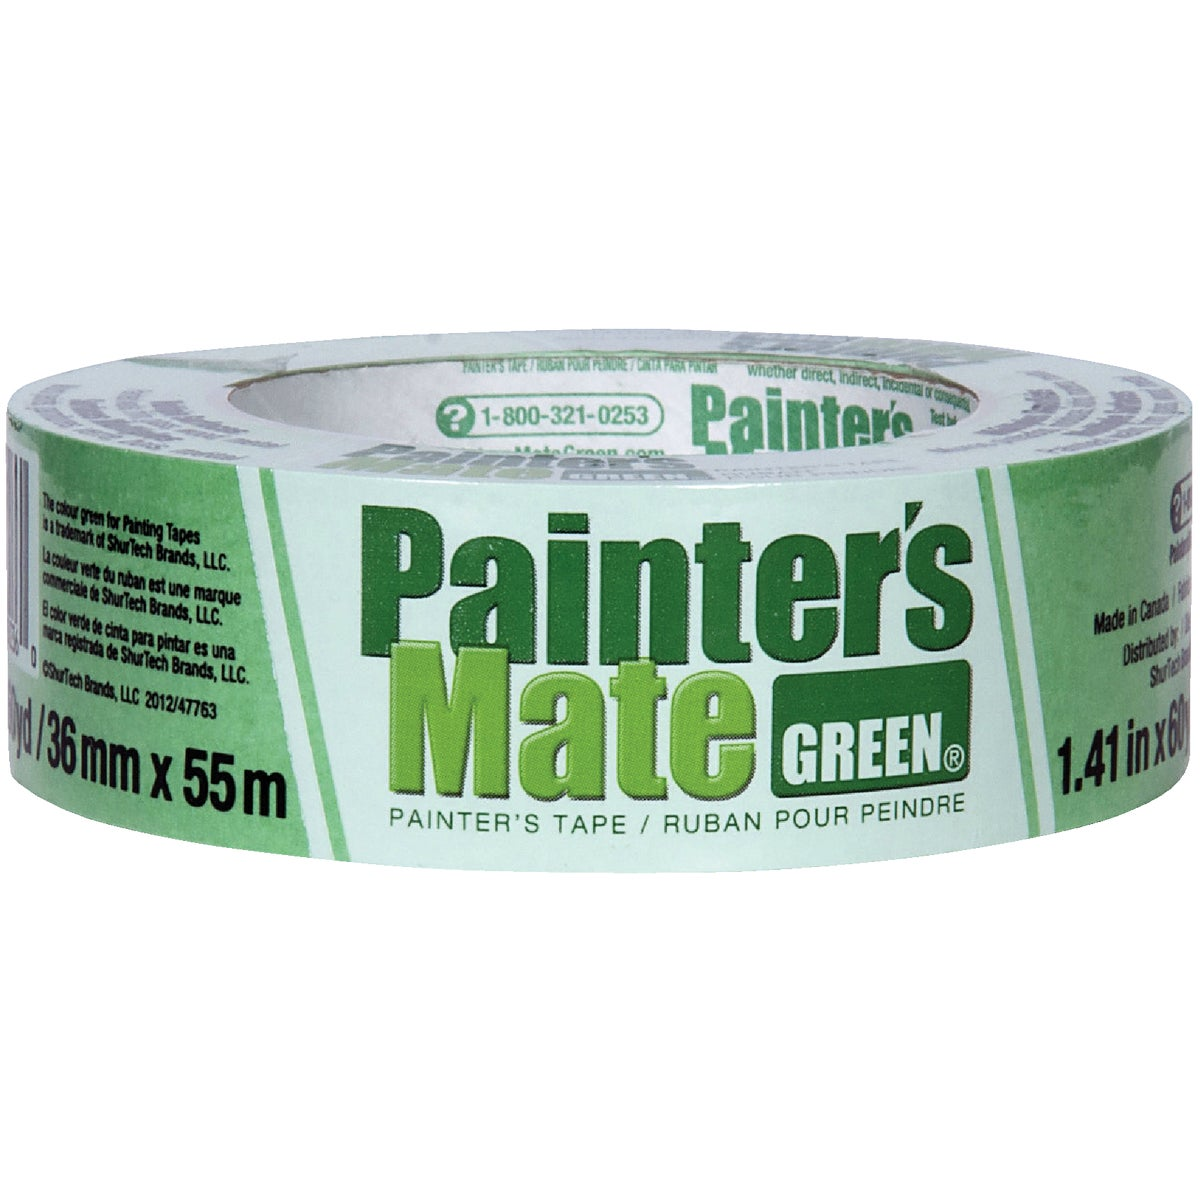 "1.41"" PAINTERS MATE TAPE"